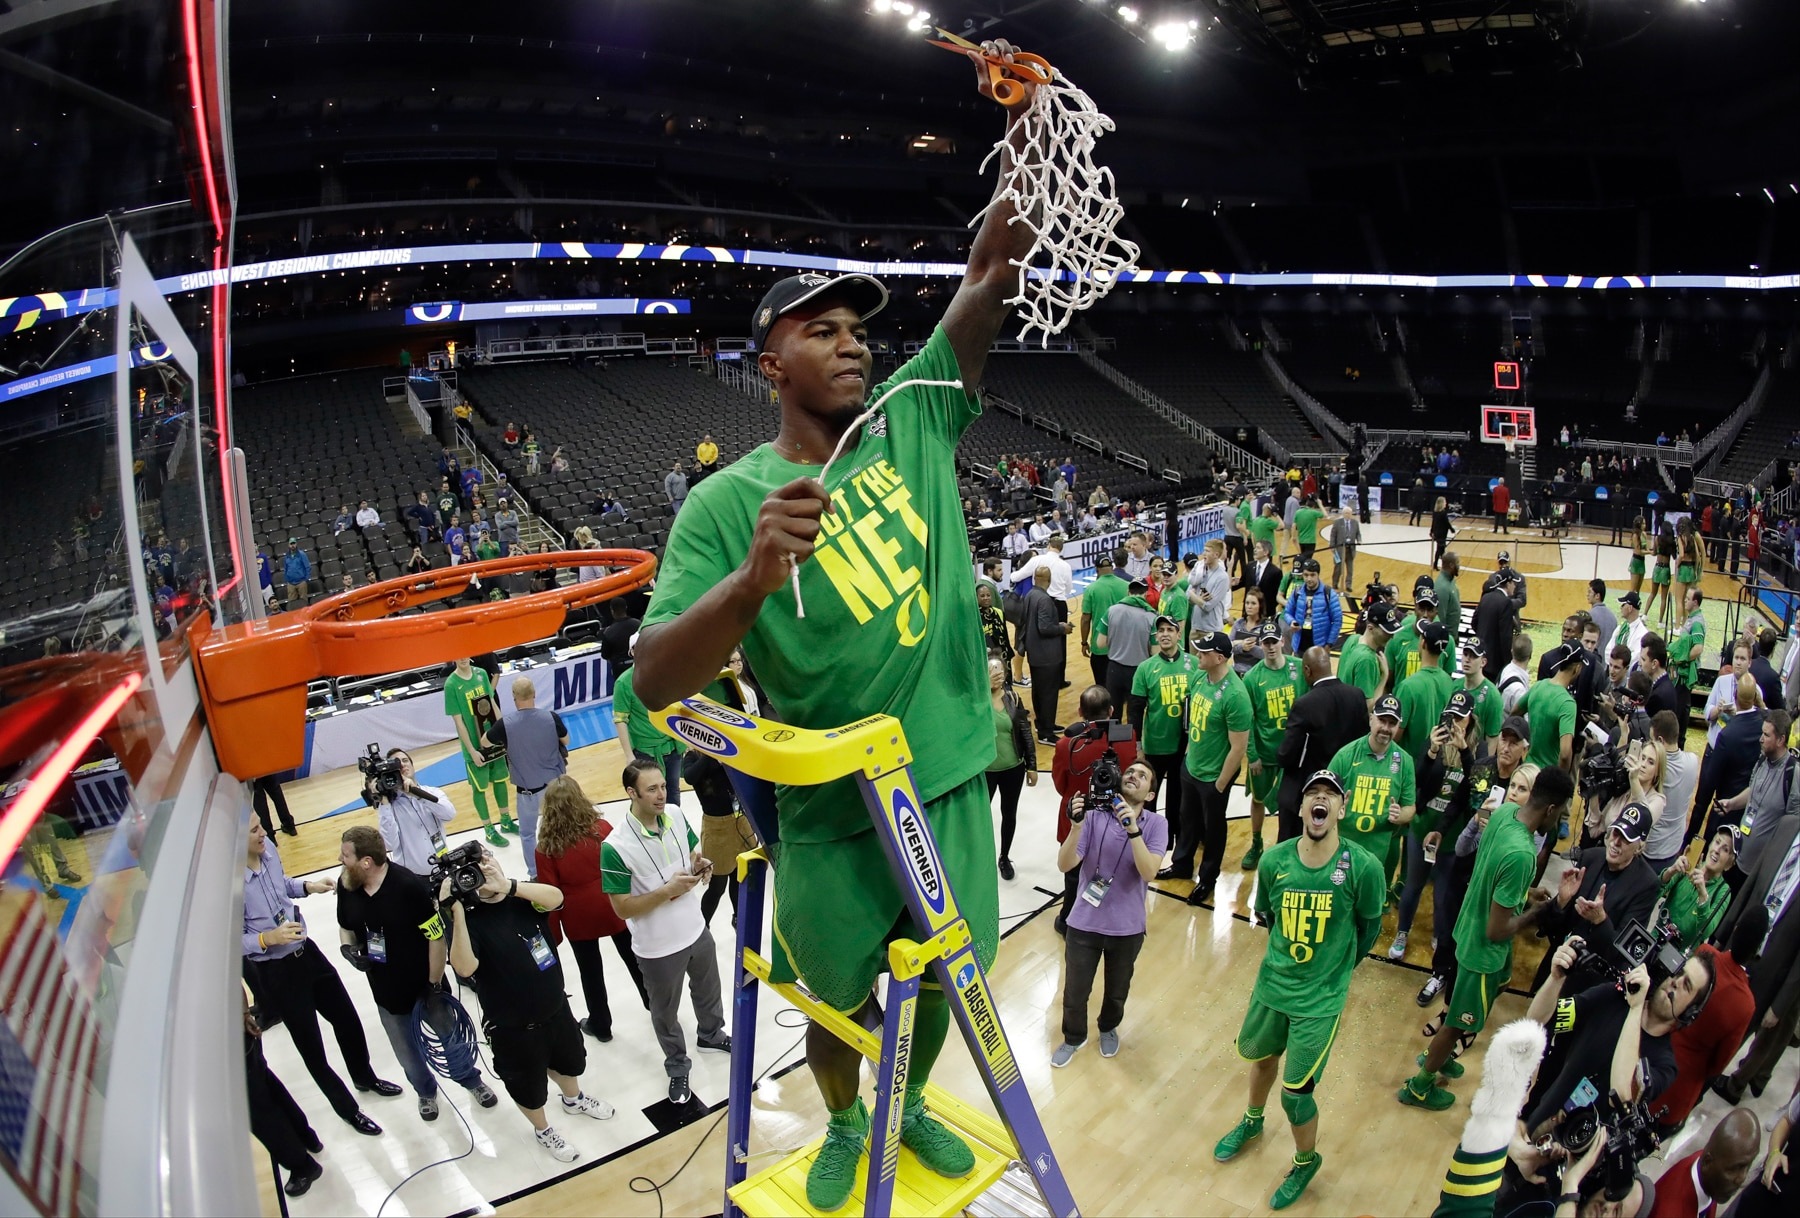 Oregon basketball player holding up basketball net he has just cut from rim. (© Charlie Riedel/AP Images)